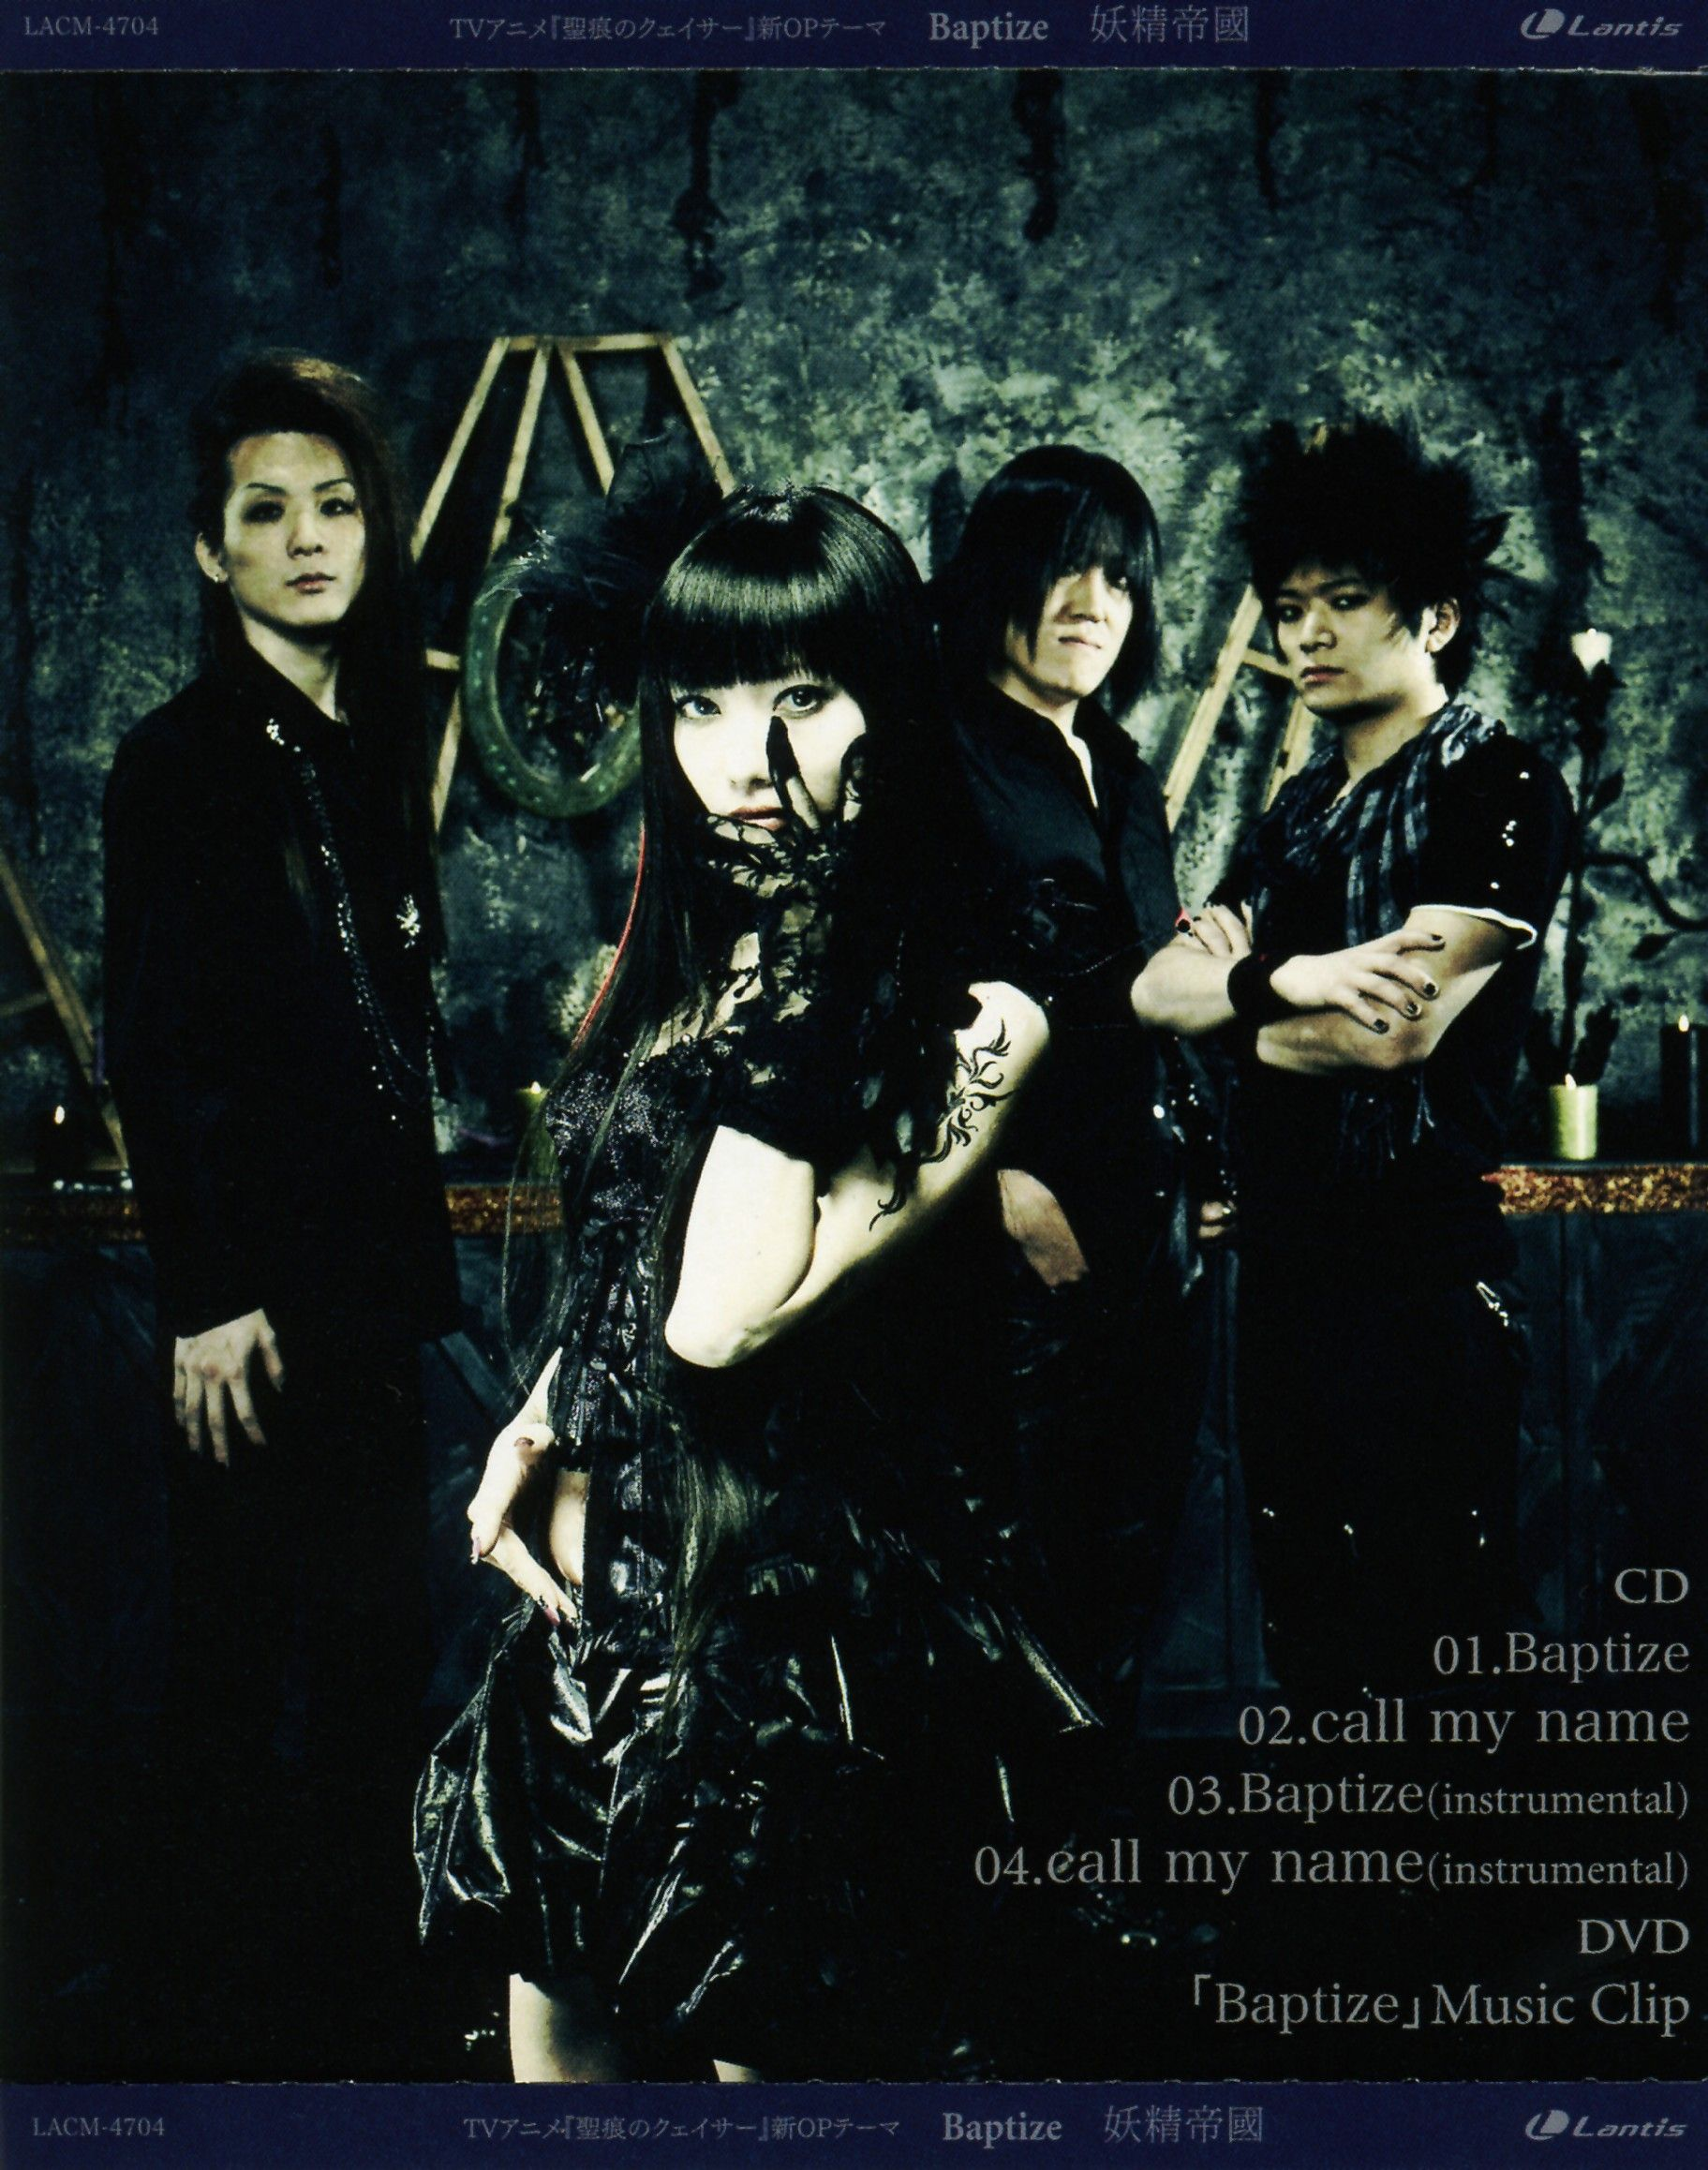 Japanese #Gothic rock band formed in 1997, Yousei Teikoku